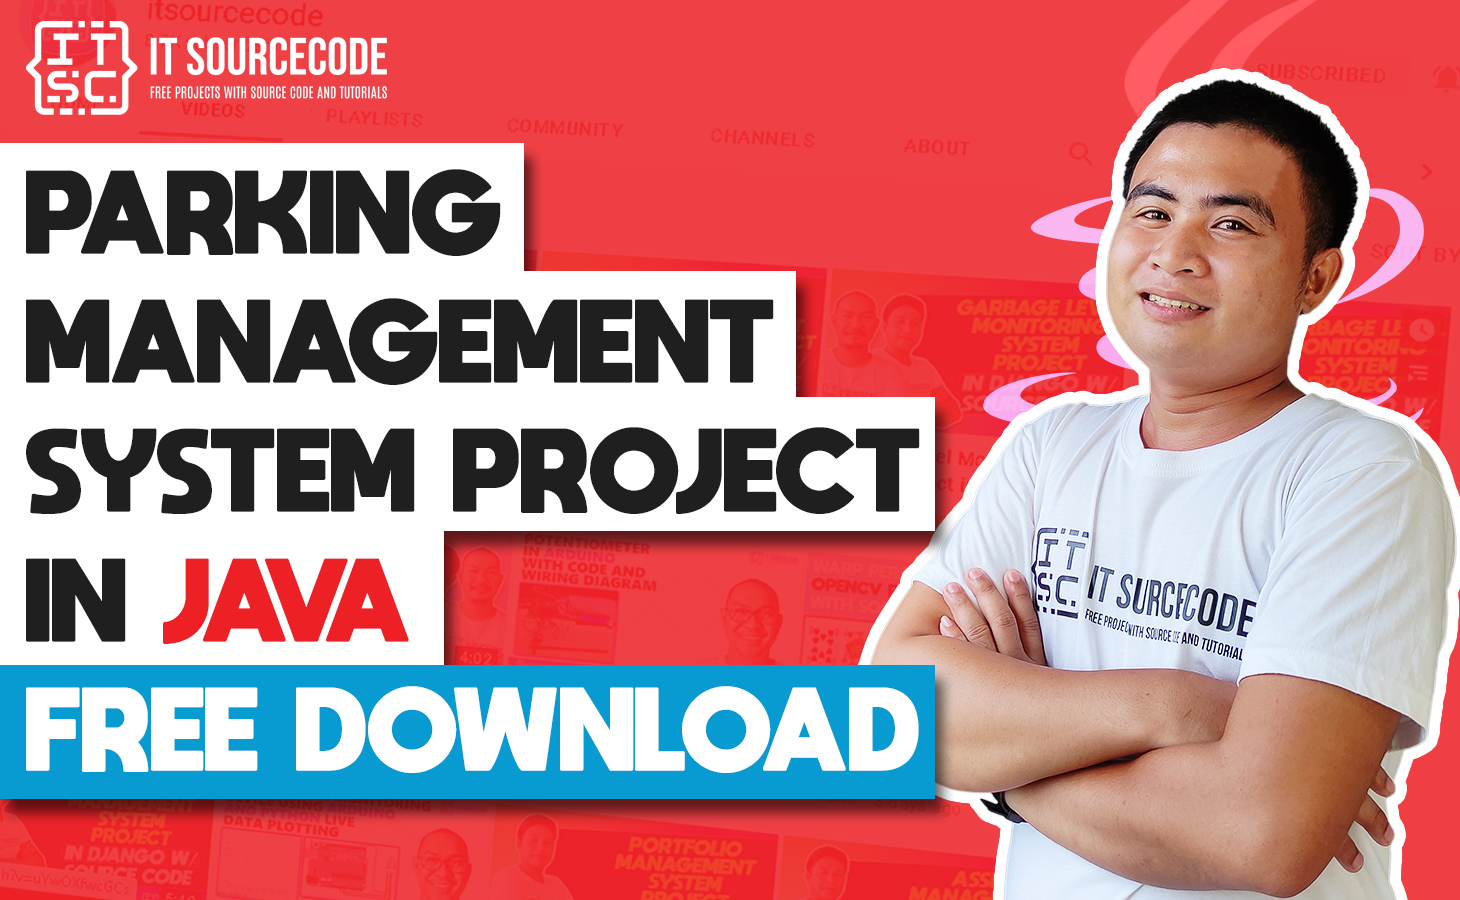 Parking Management System Project In Java Free Download